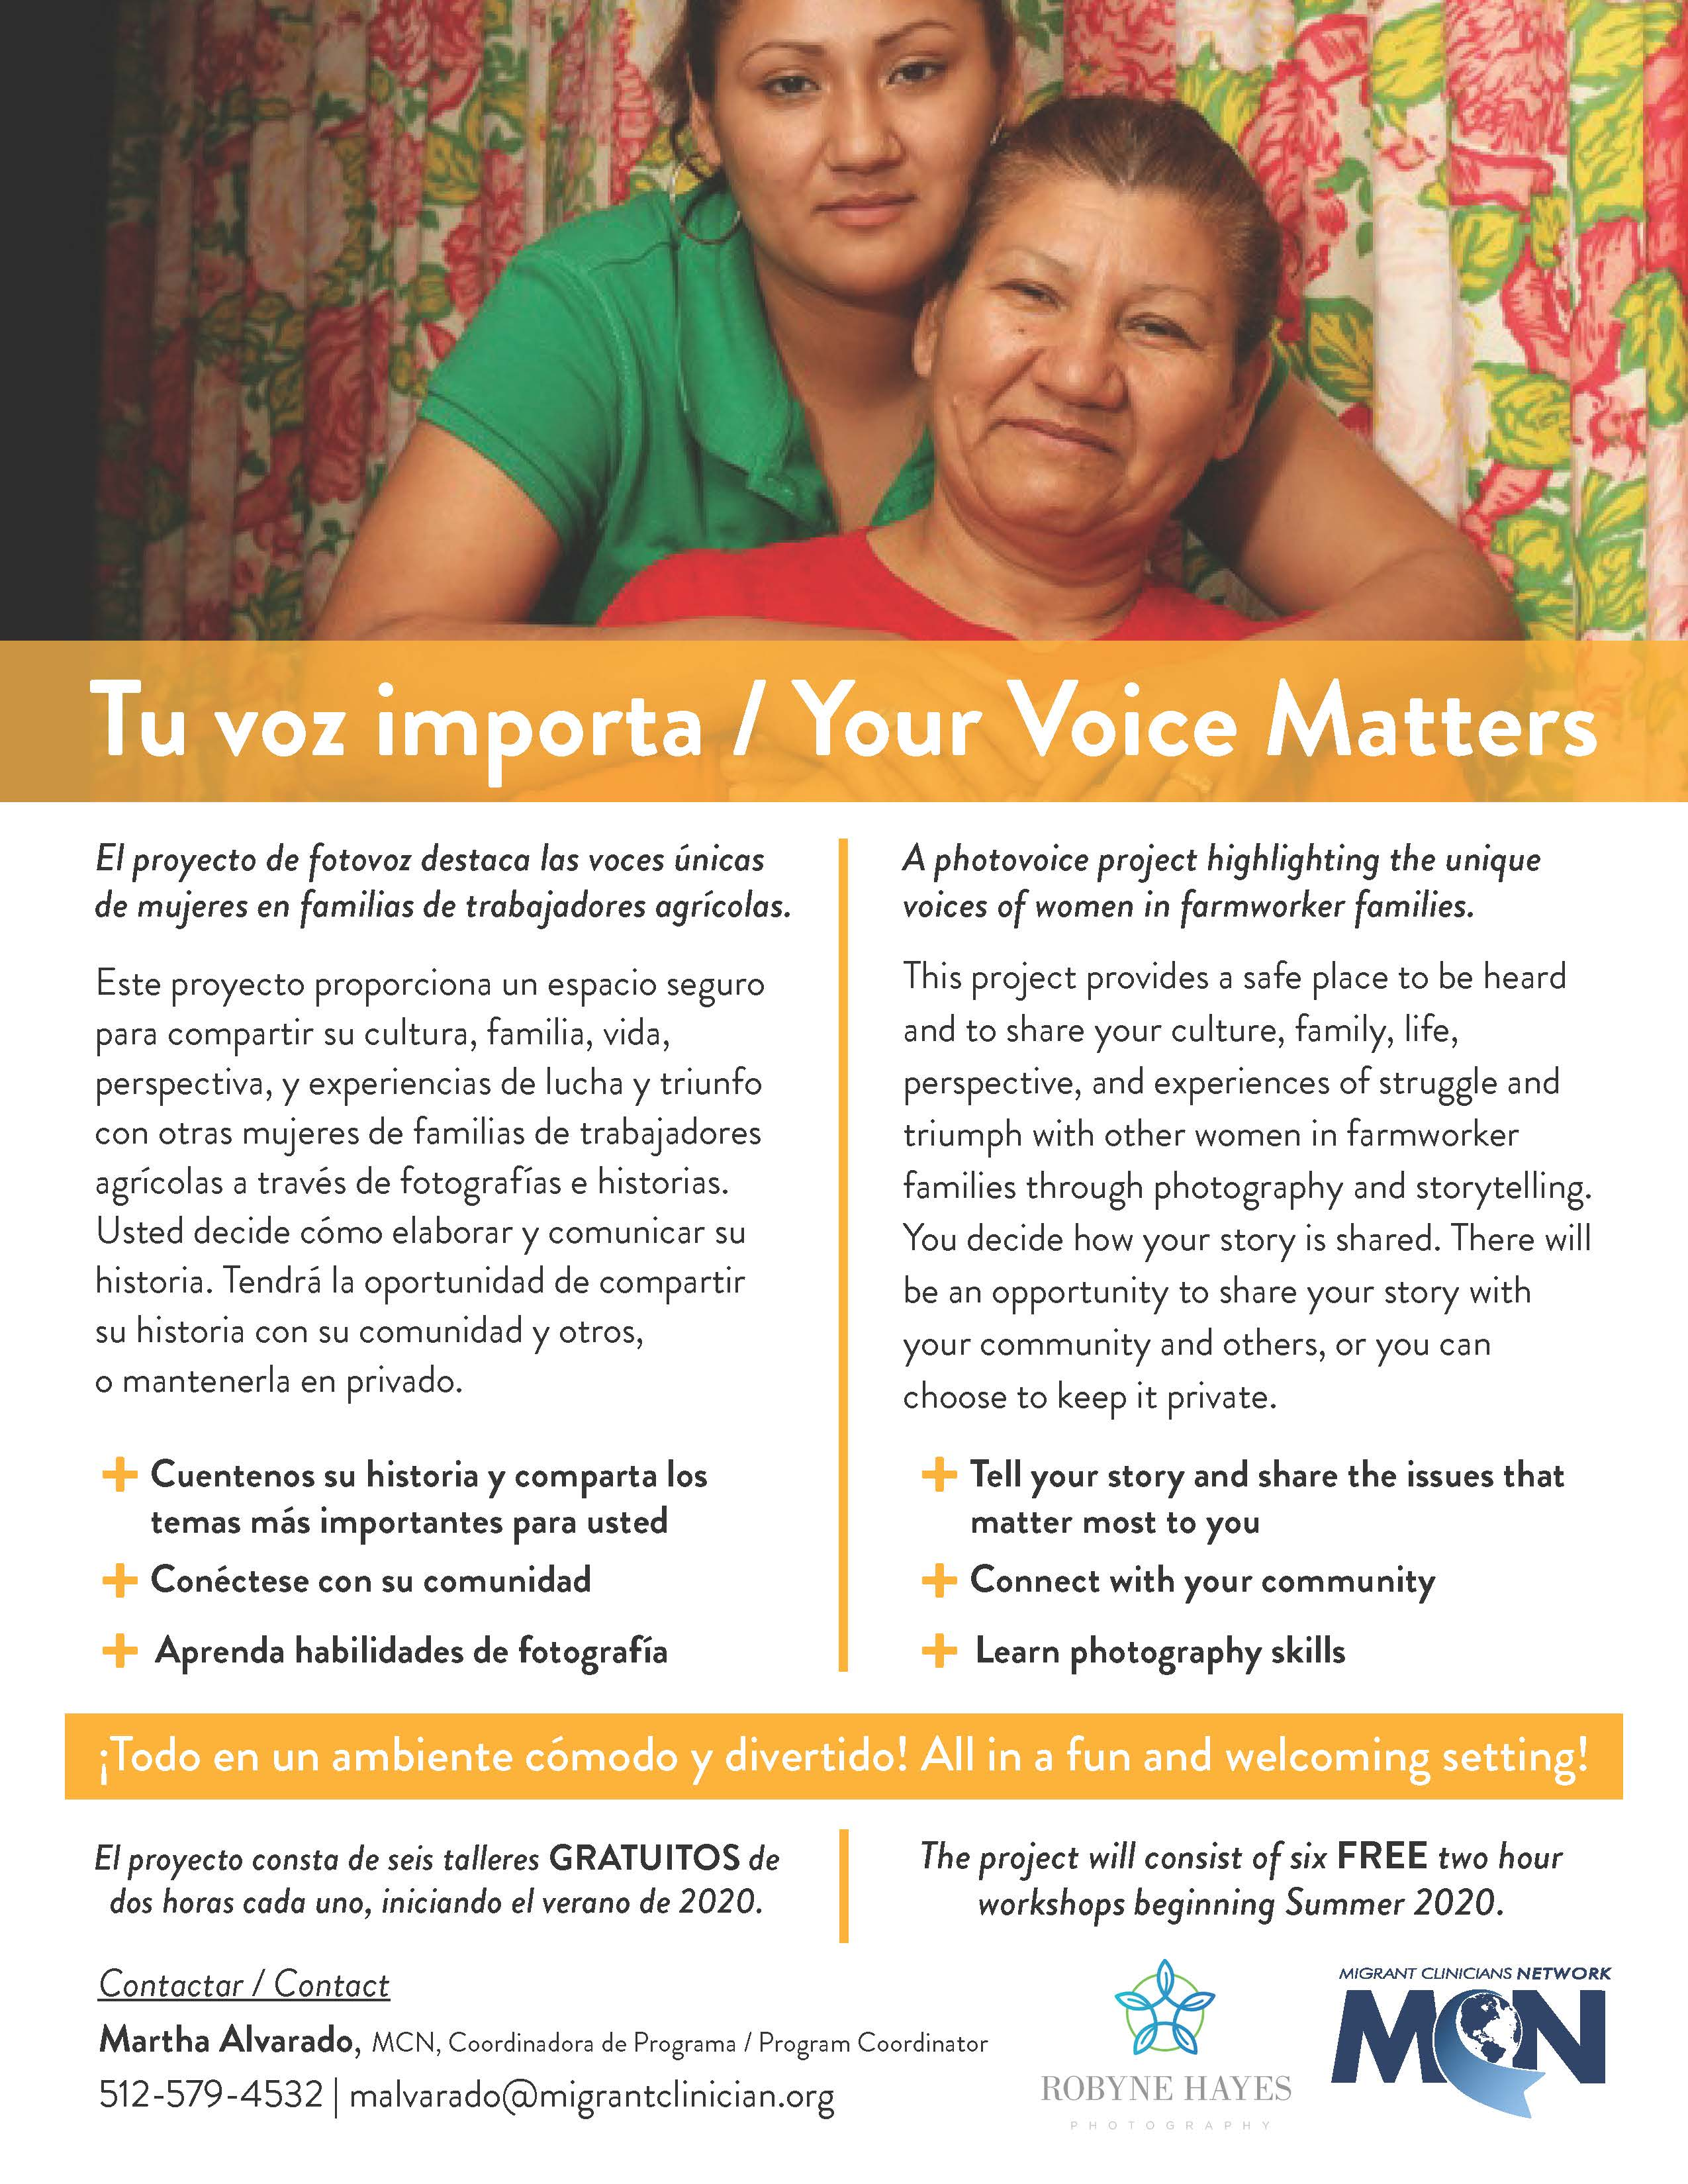 A flyer for the 'Your Voice Matters' photovoice project